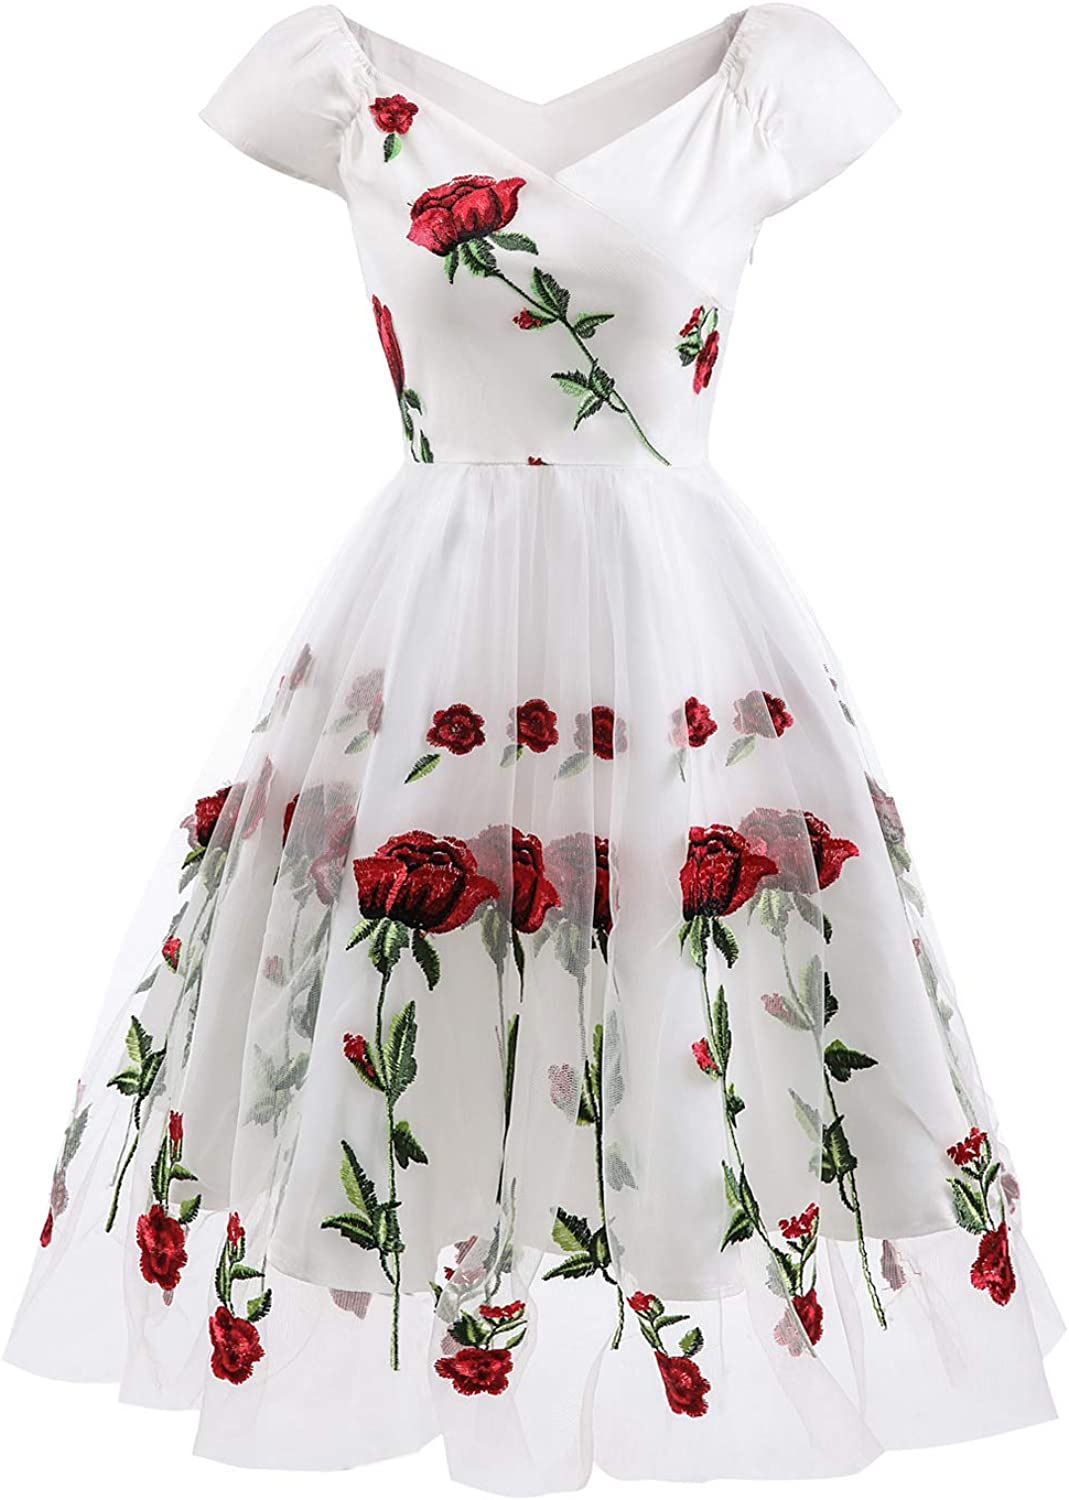 Ayerdress Women's Vintage Off Shoulder Floral Embroideried Cocktail Party Swing Dress